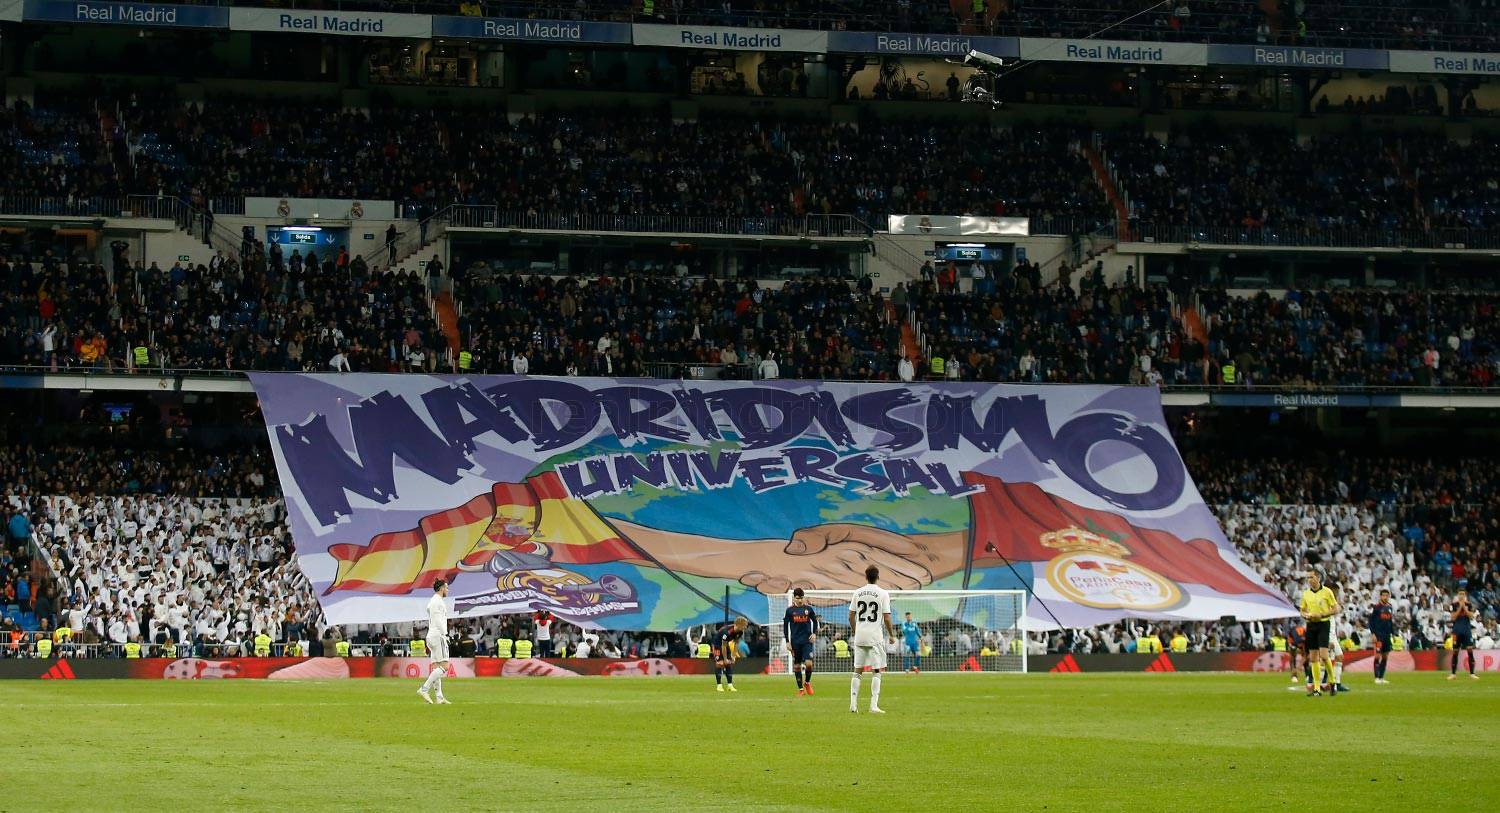 Real Madrid - Real Madrid - Valencia - 01-12-2018